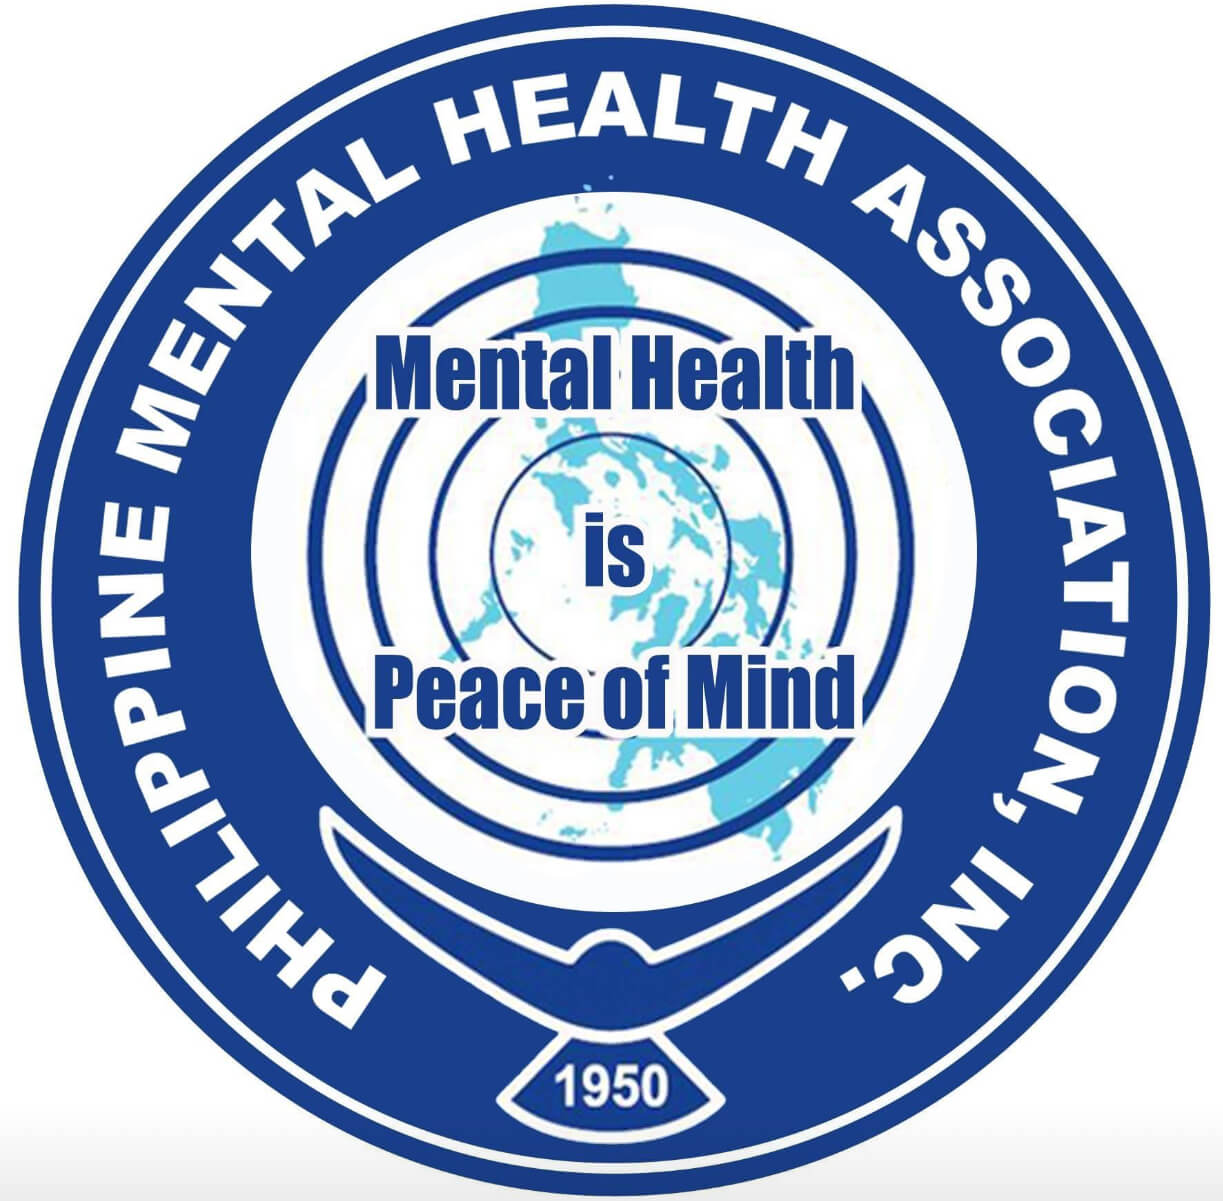 Majority of callers seeking mental health assistance are from BPO industry – PMHA